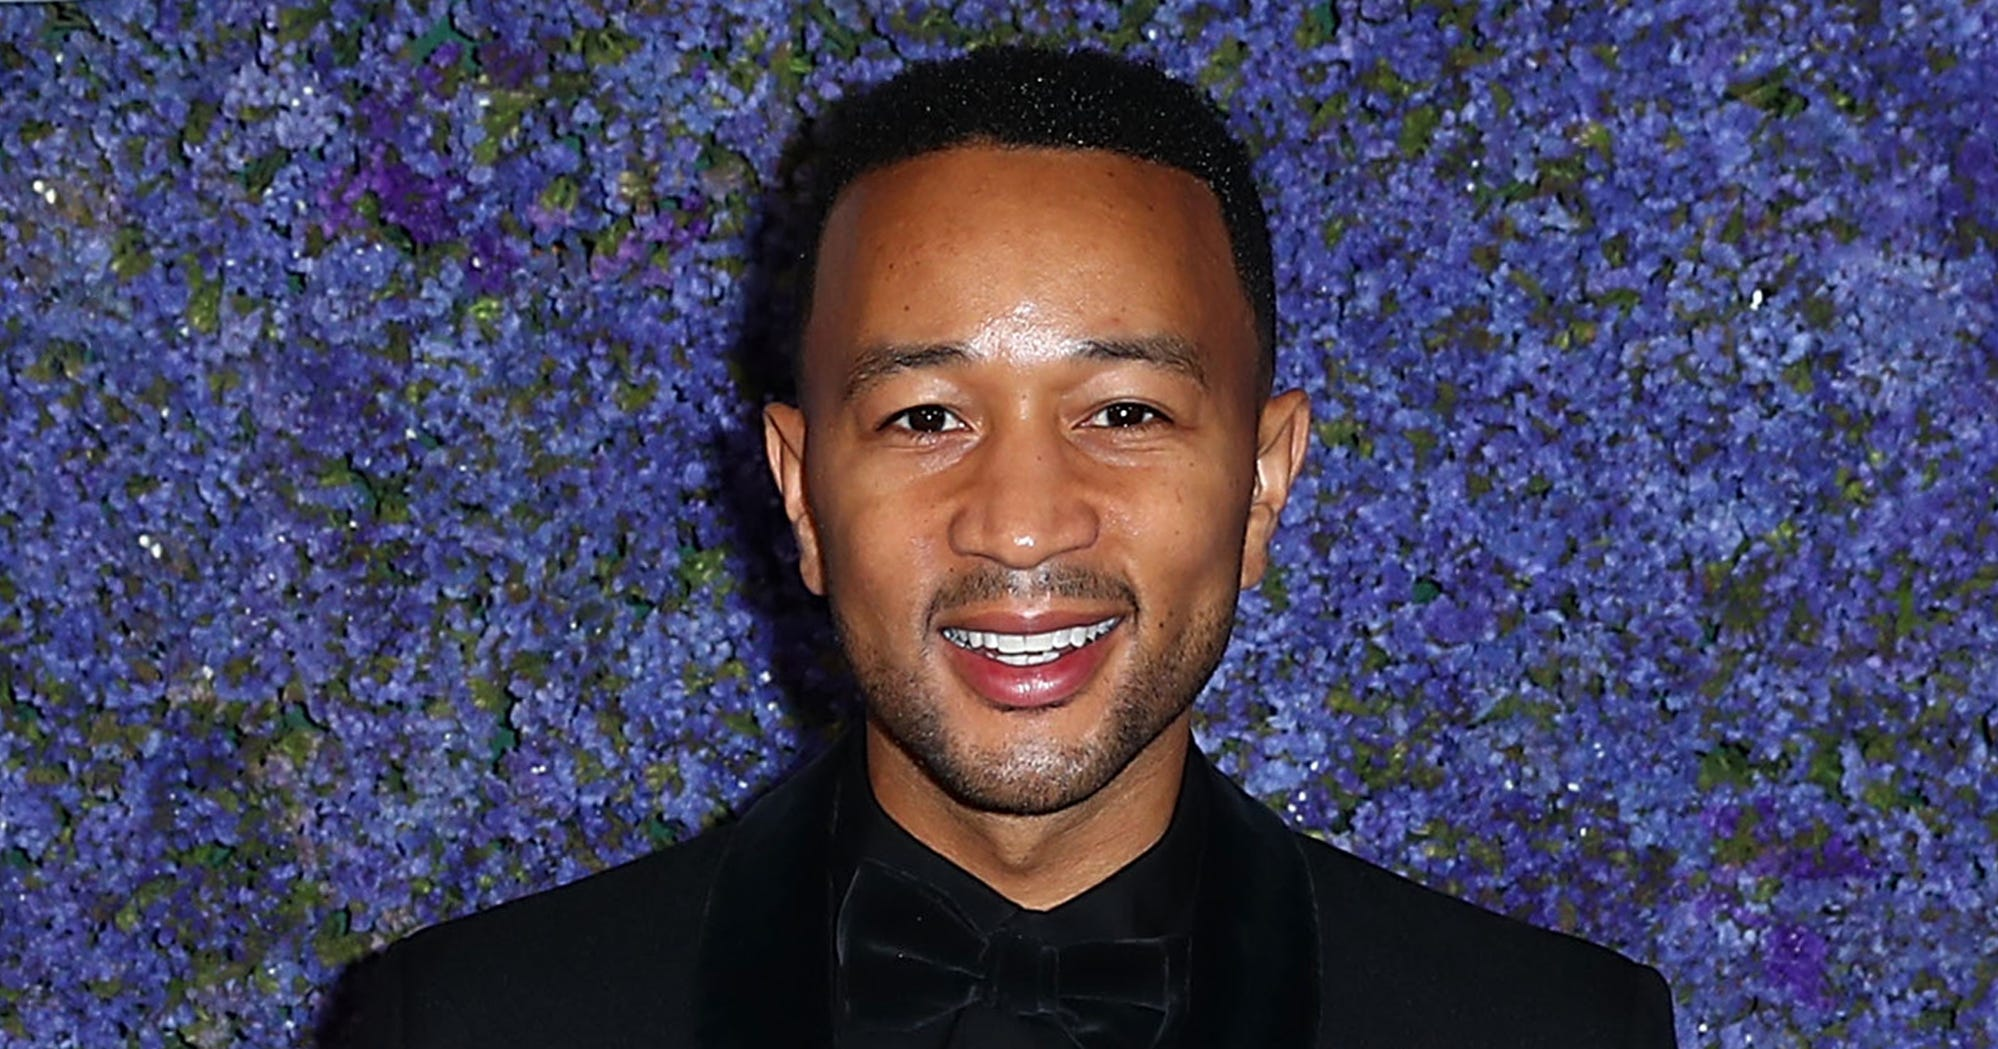 John Legend Became The Next James Bond — At His Birthday Party